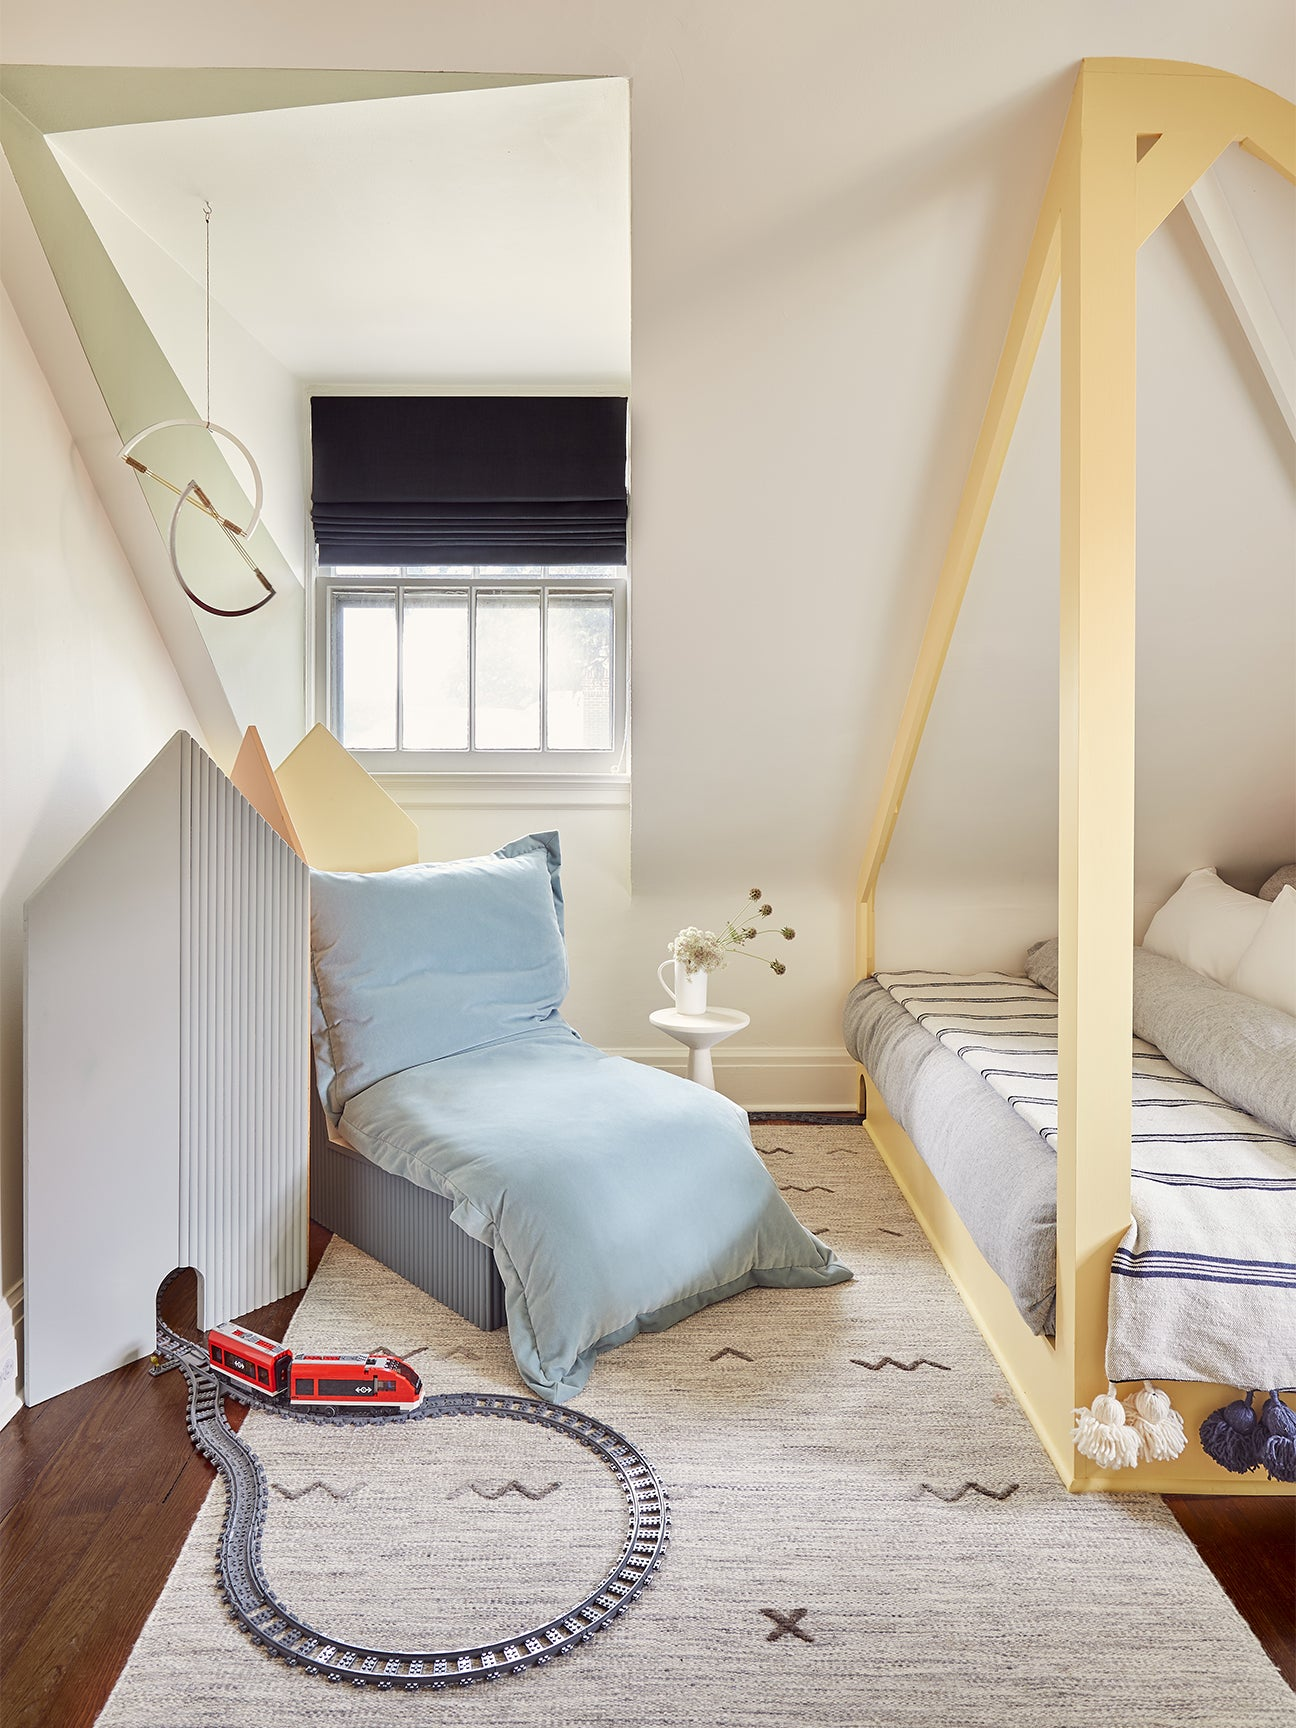 Attic Kids Room With Blue Slipper Chair